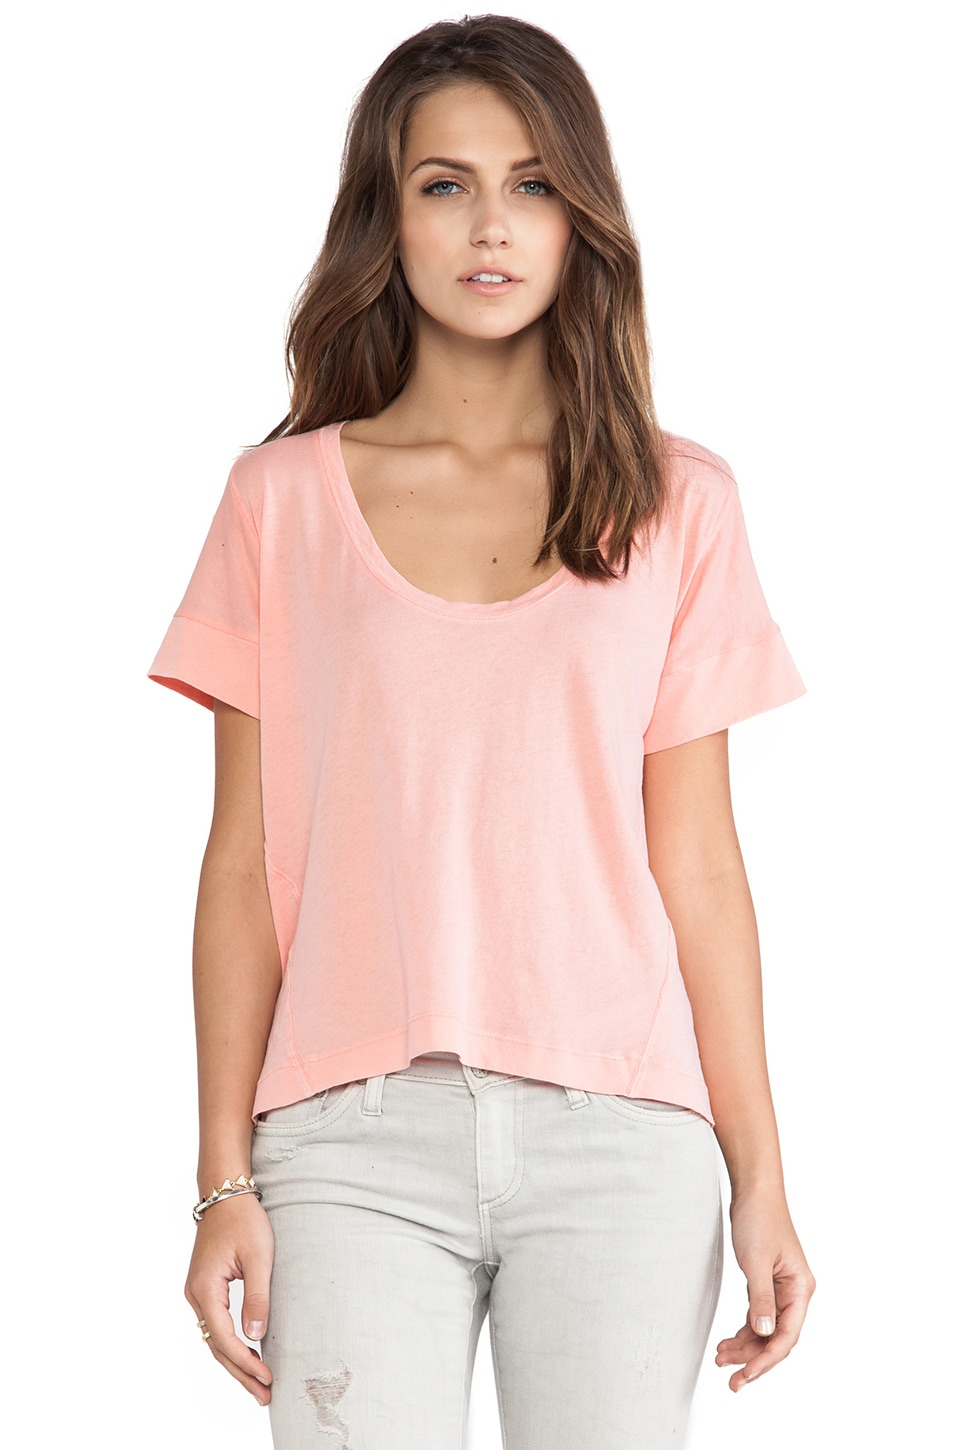 Splendid Vintage Whisper Top in Papaya Punch